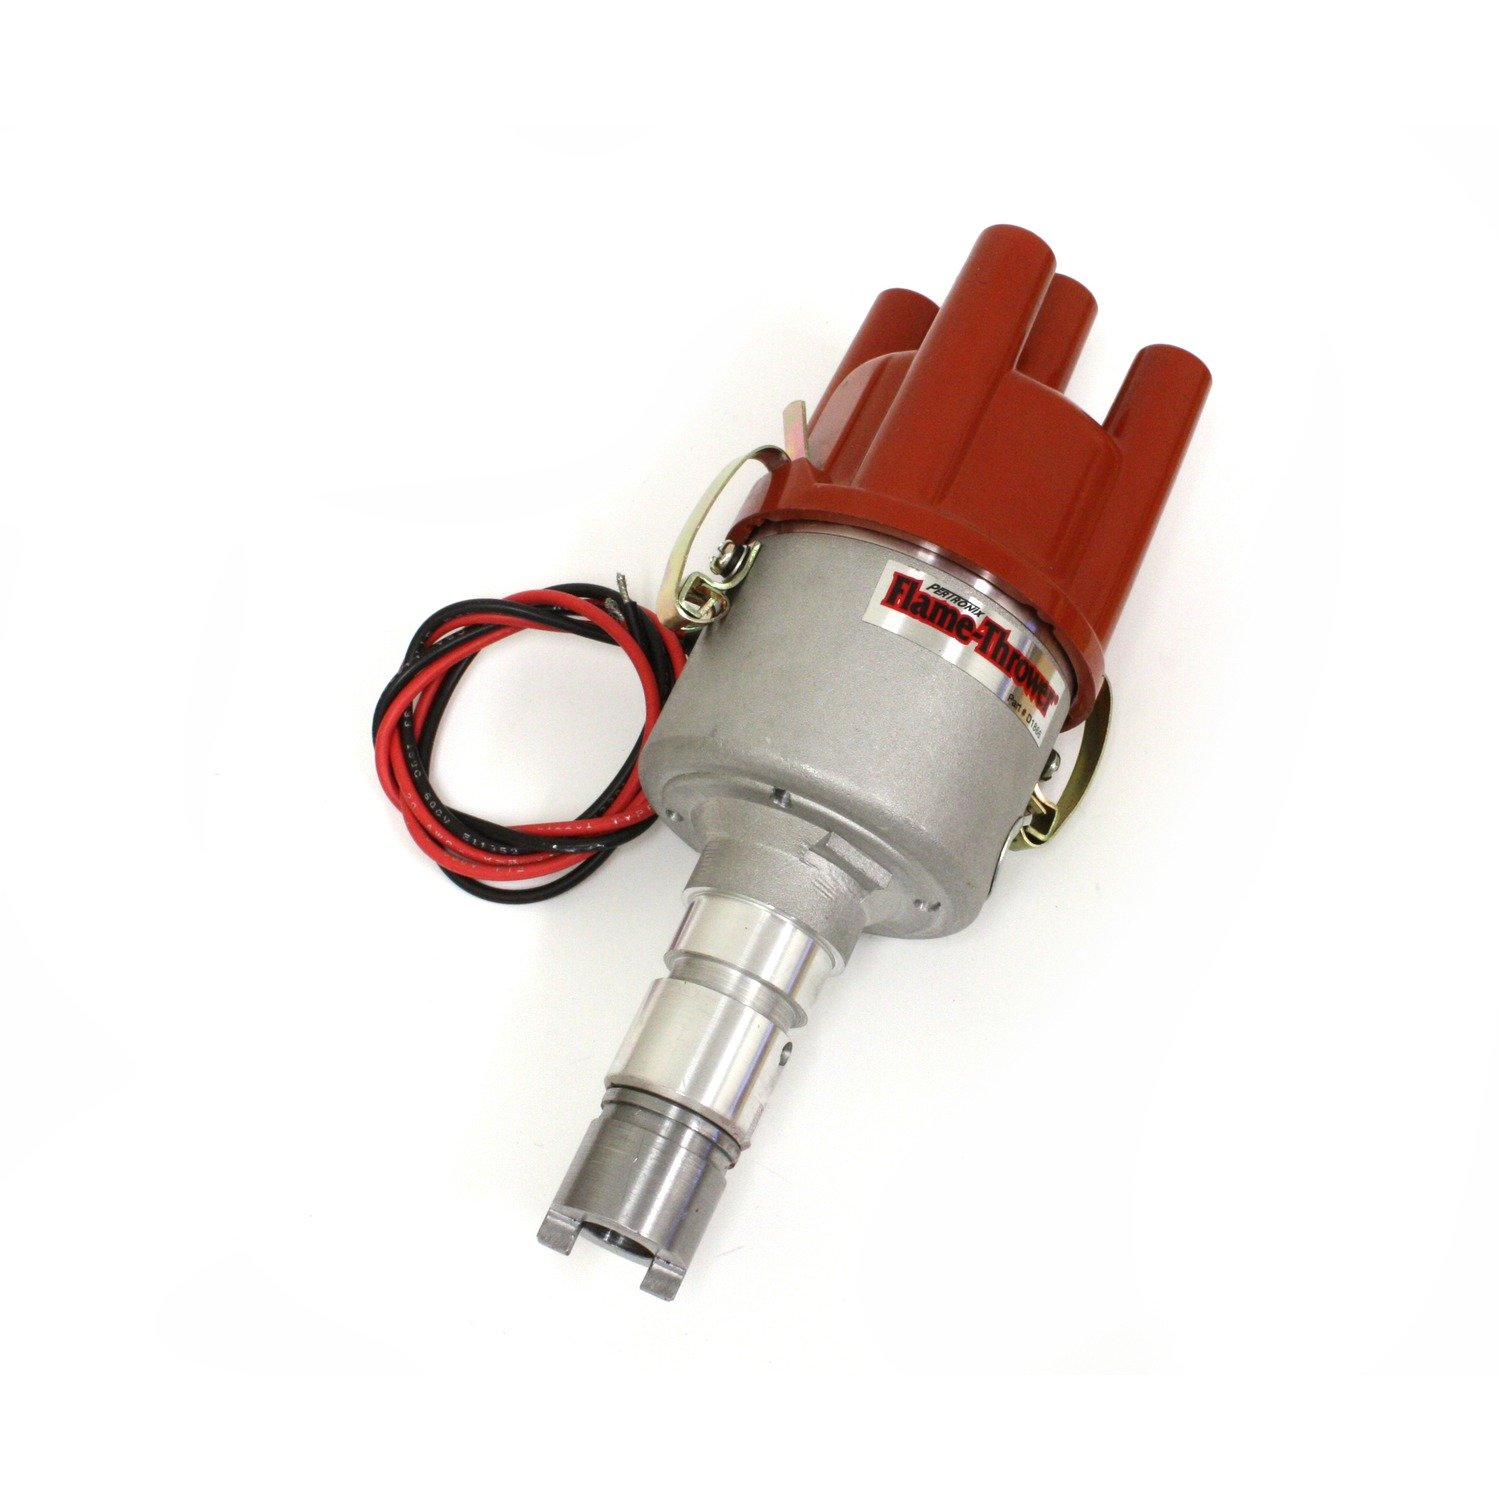 Pertronix D181604 Ignitor II Distributor with Non-Vacuum Cast for Alfa Romeo